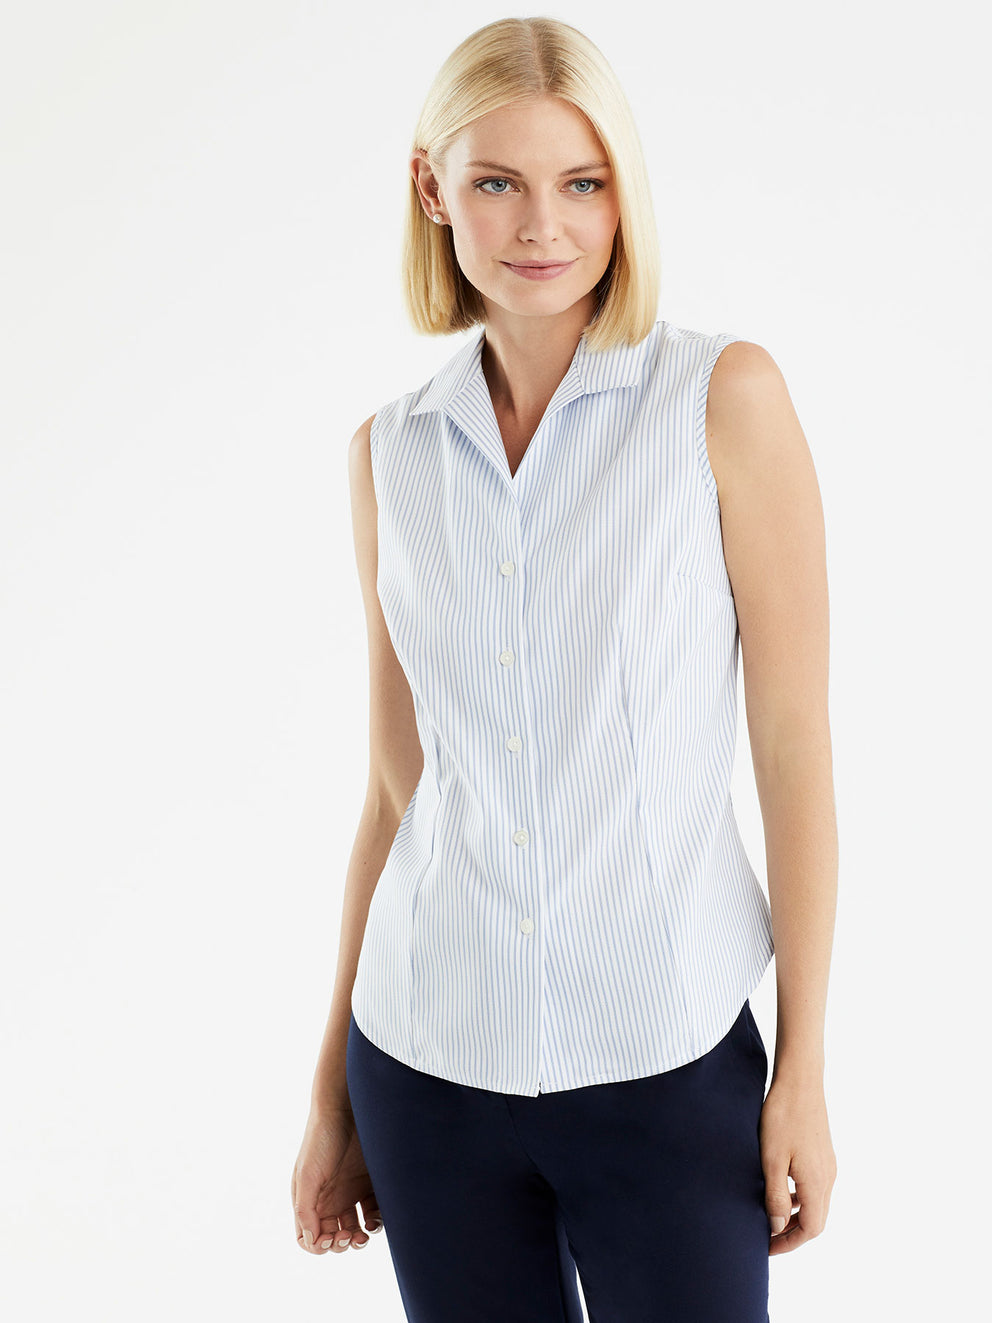 The Jones New York Non-Iron Sleeveless Shirt in color Classic Striped Blue - Image Position 1